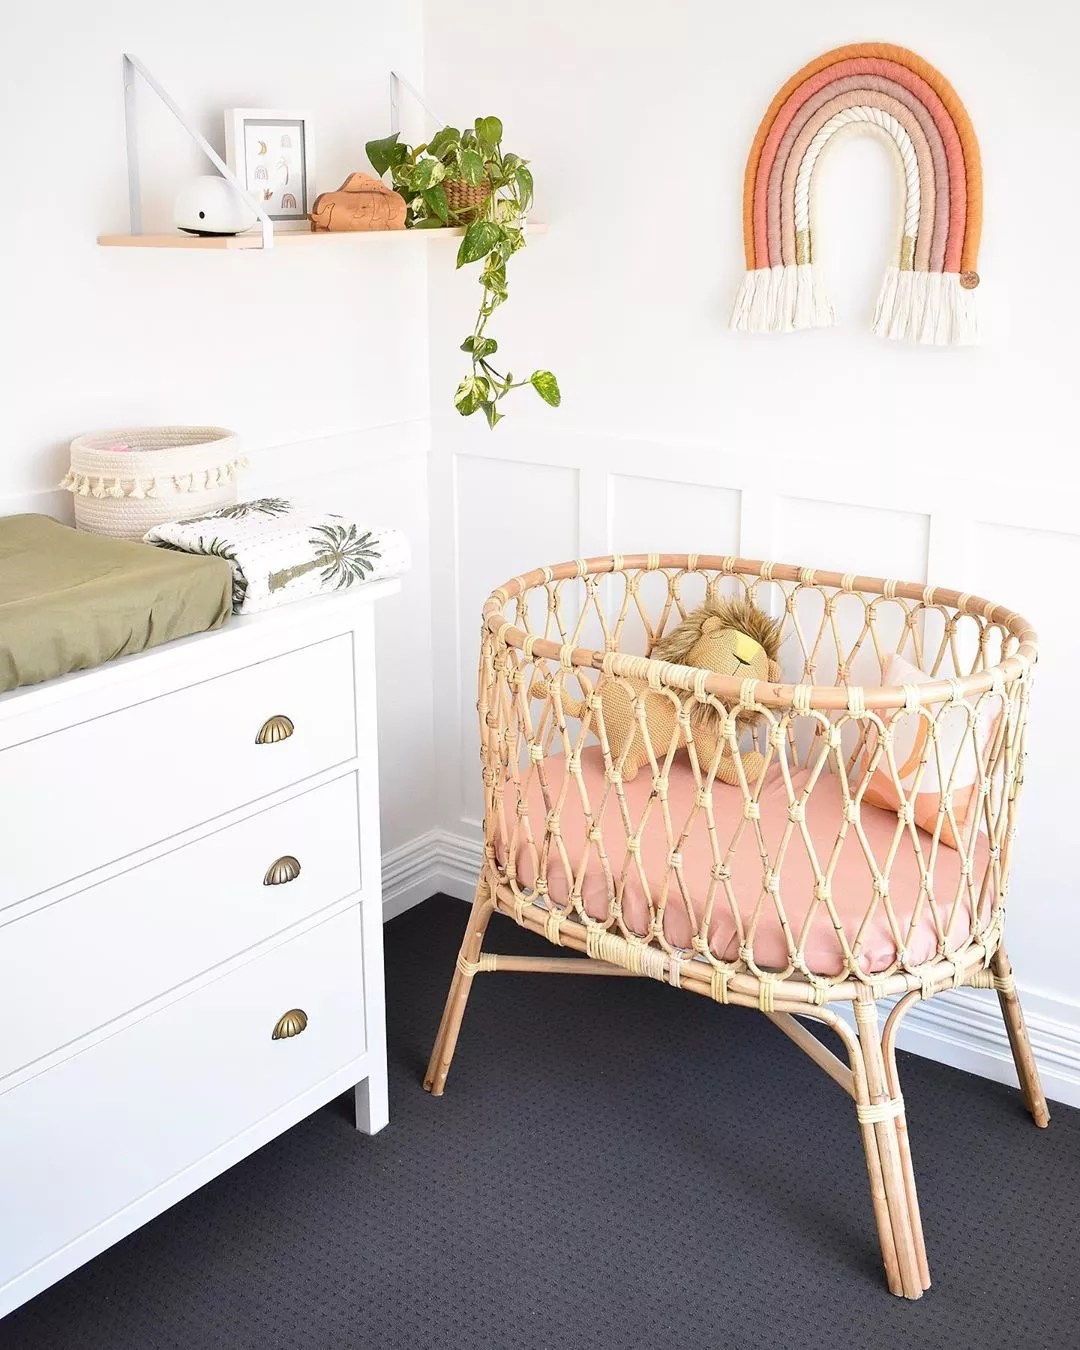 Bassinet and changing table in corner. Photo by Instagram user @mykindofbliss